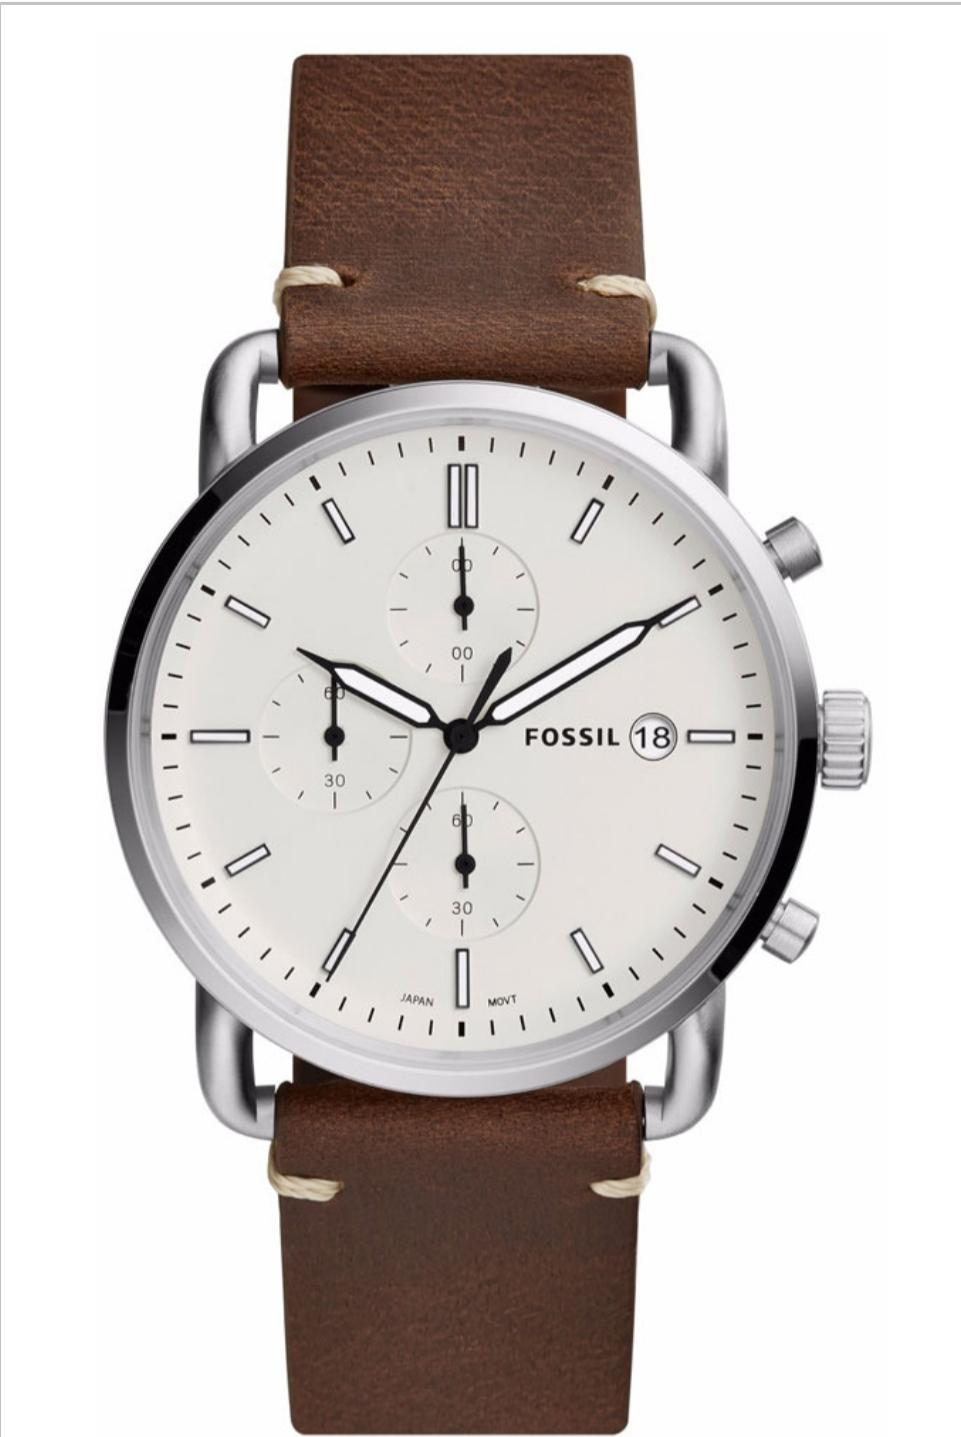 FOSSIL The Commuter Brown Leather Chronograph